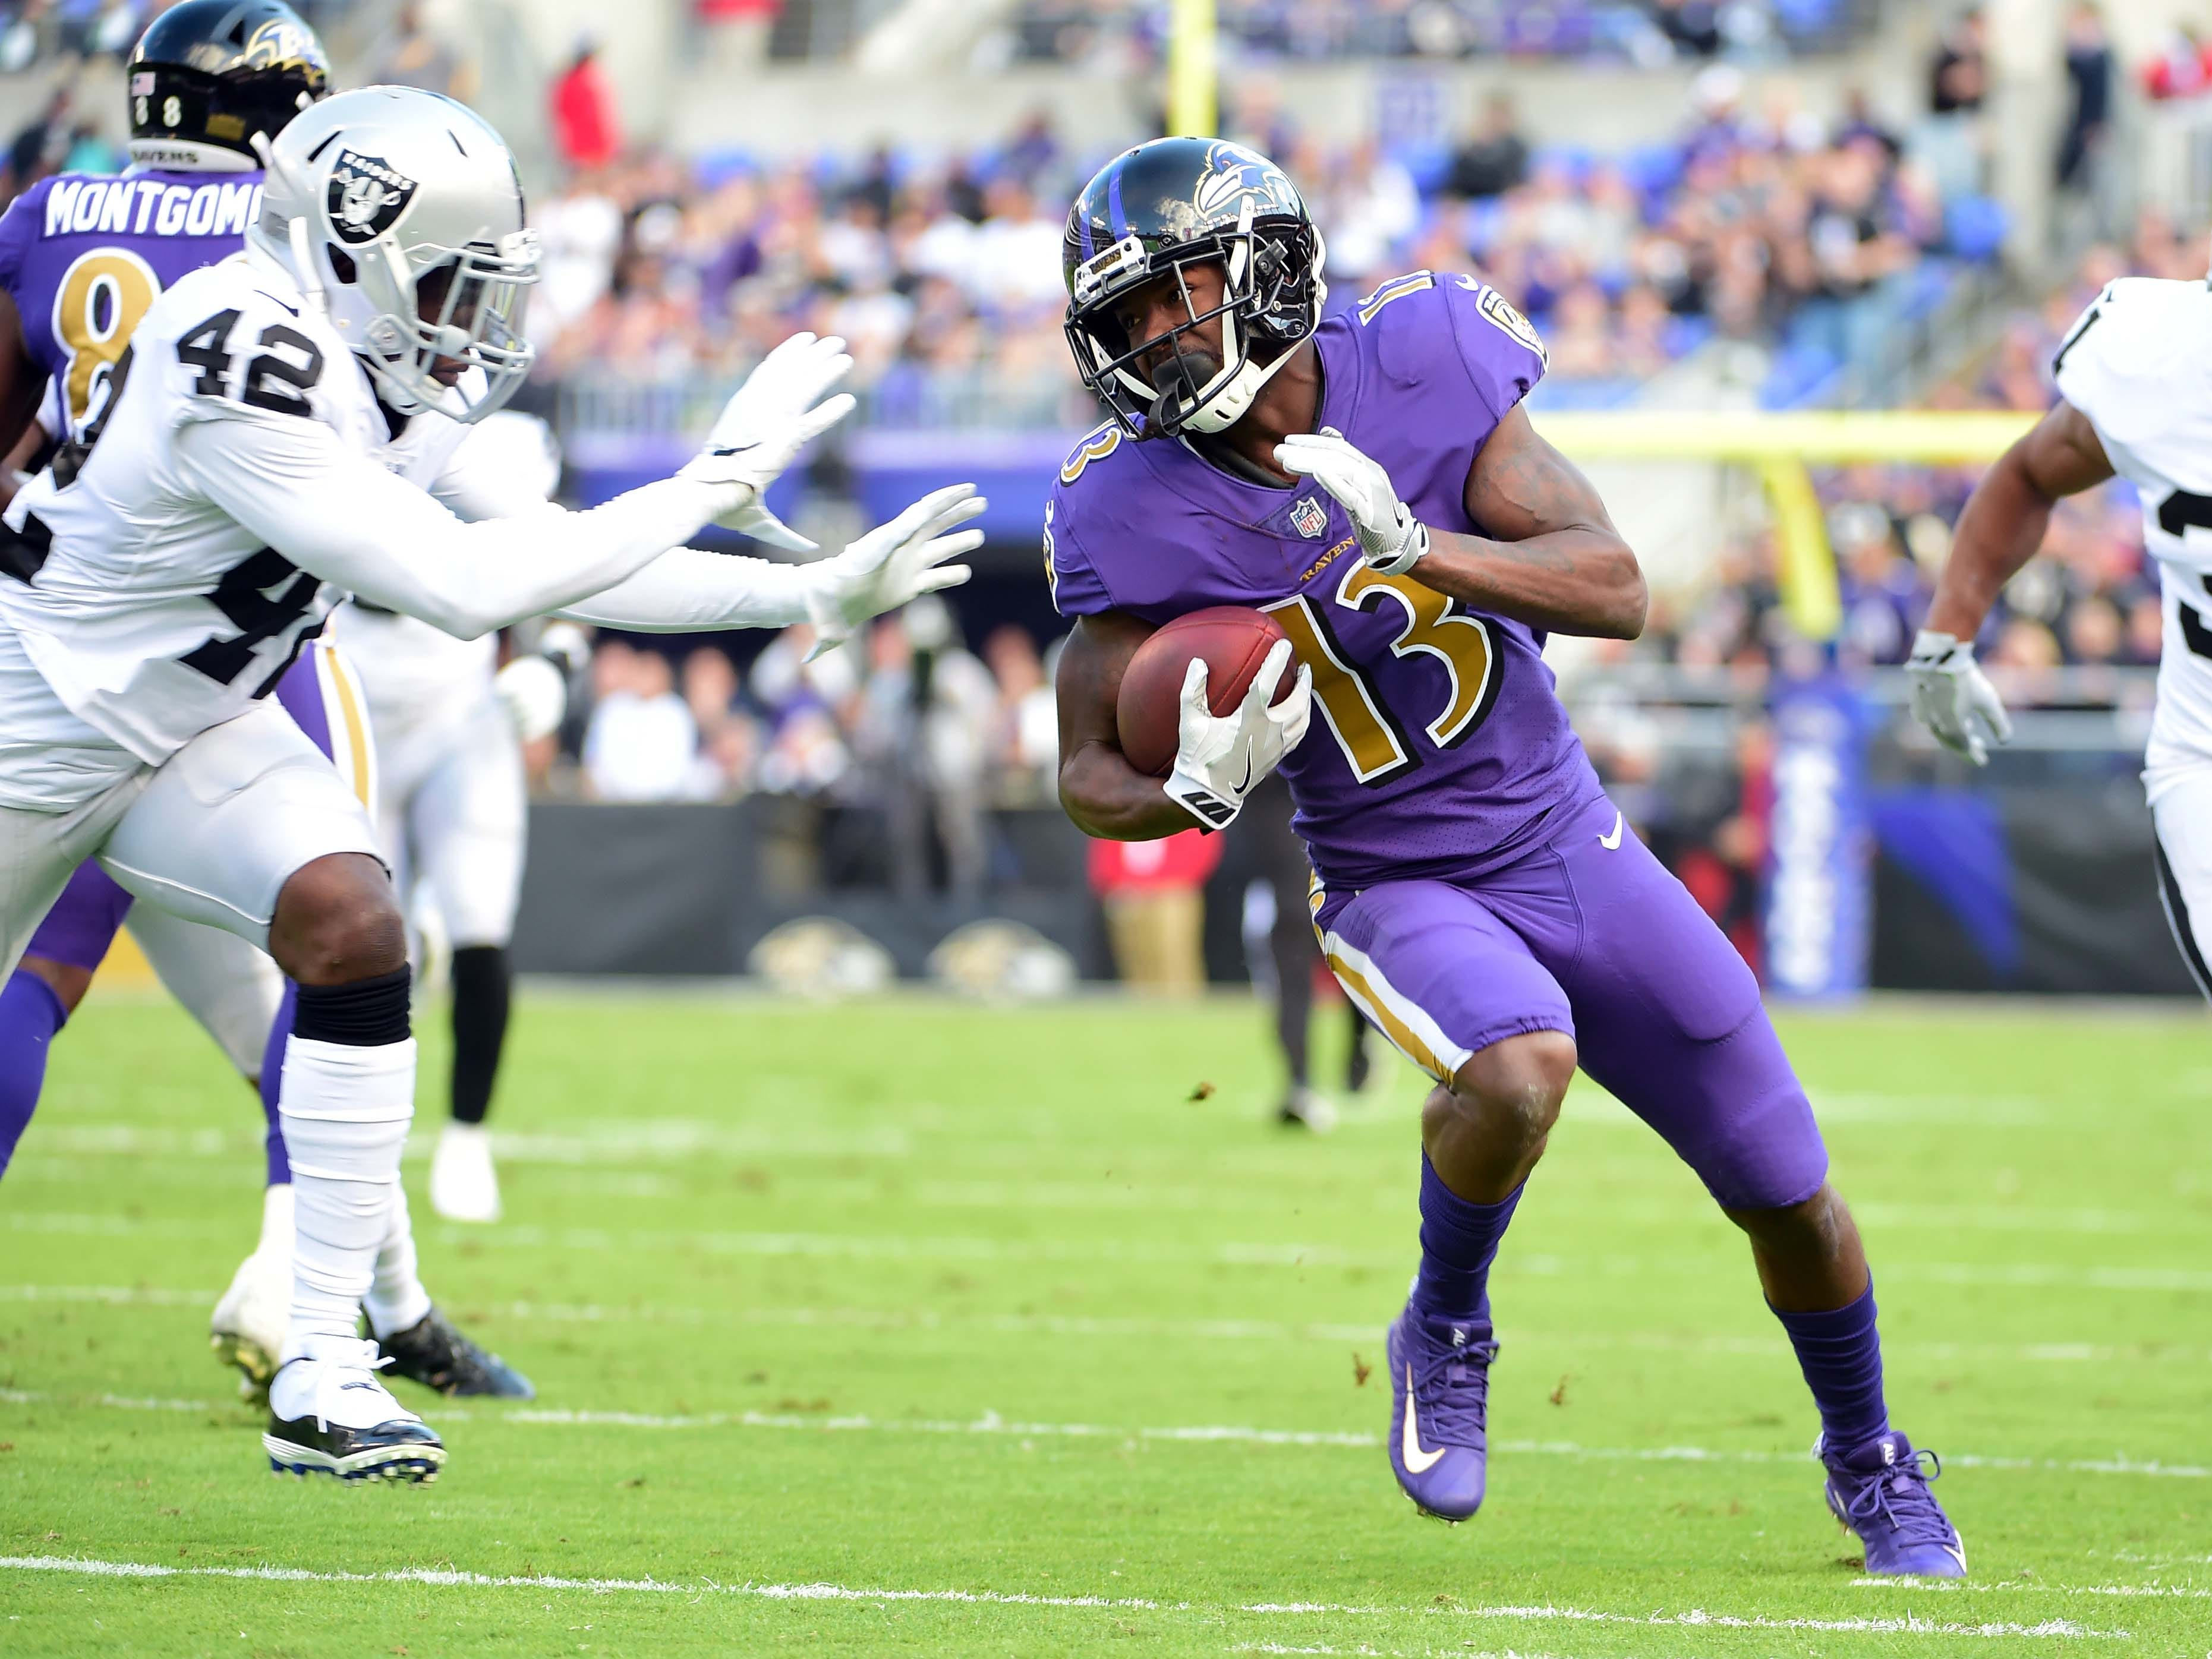 NR: John Brown, WR, Ravens: Agreed to deal with Bills